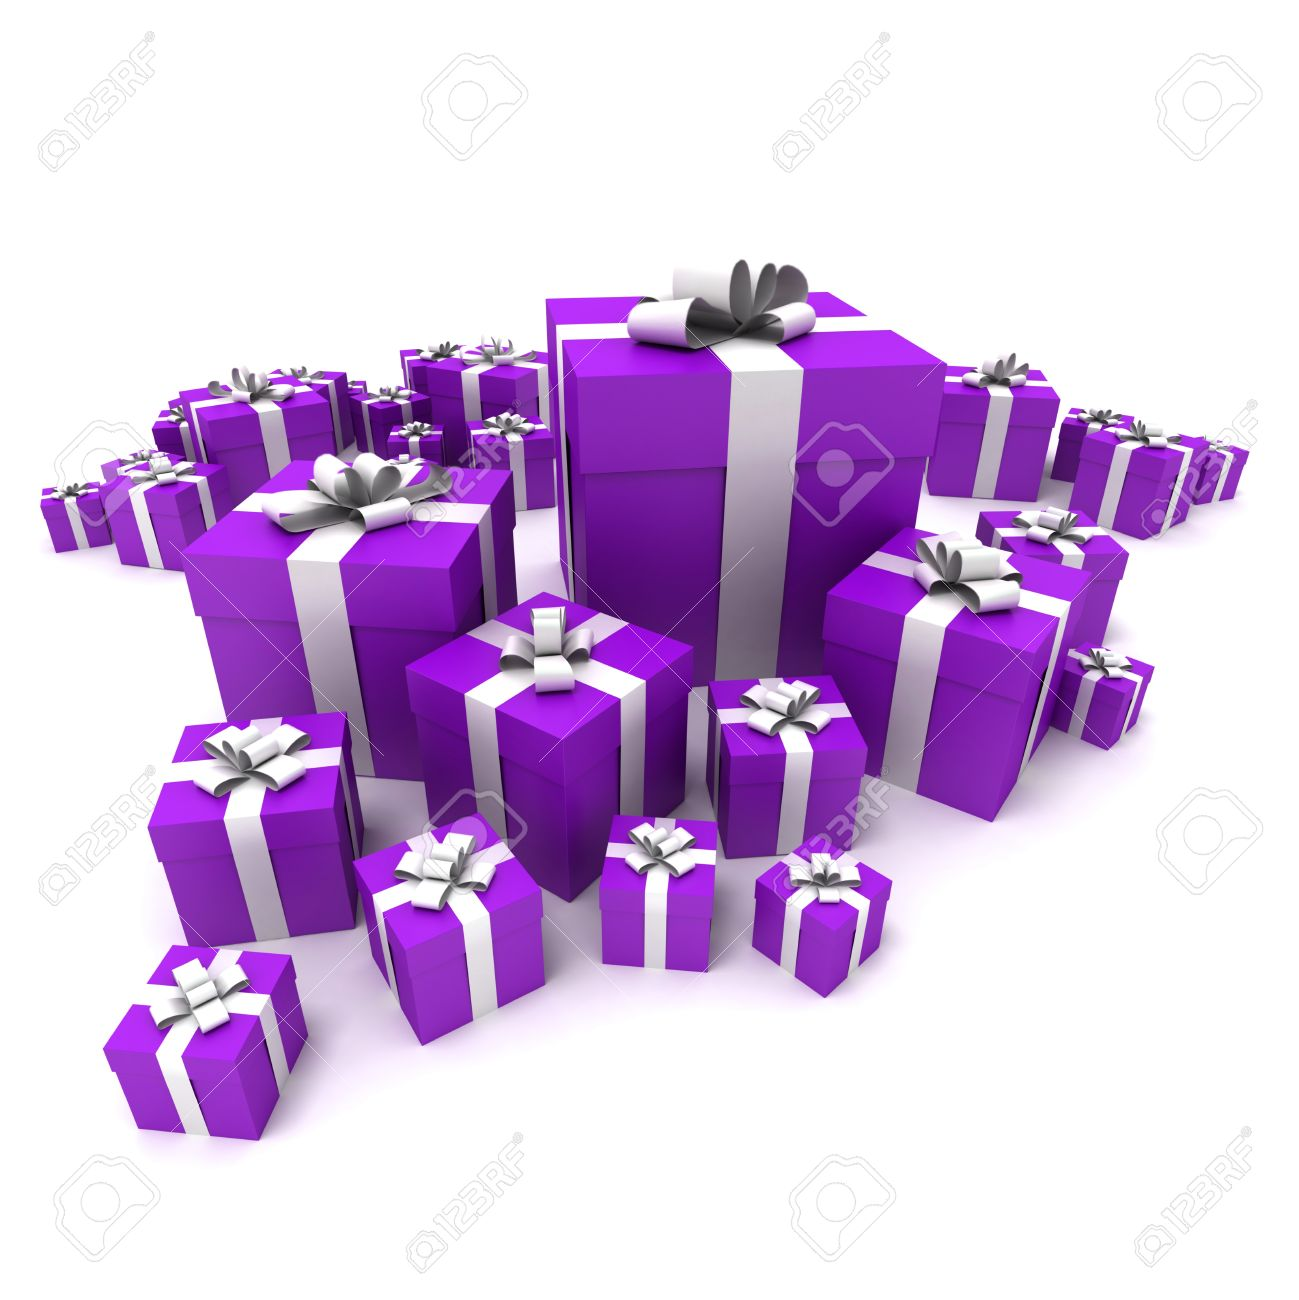 3D rendering of a big group of purple gift boxes with a white ribbons in different sizes  sc 1 st  123RF.com : purple gift boxes - princetonregatta.org